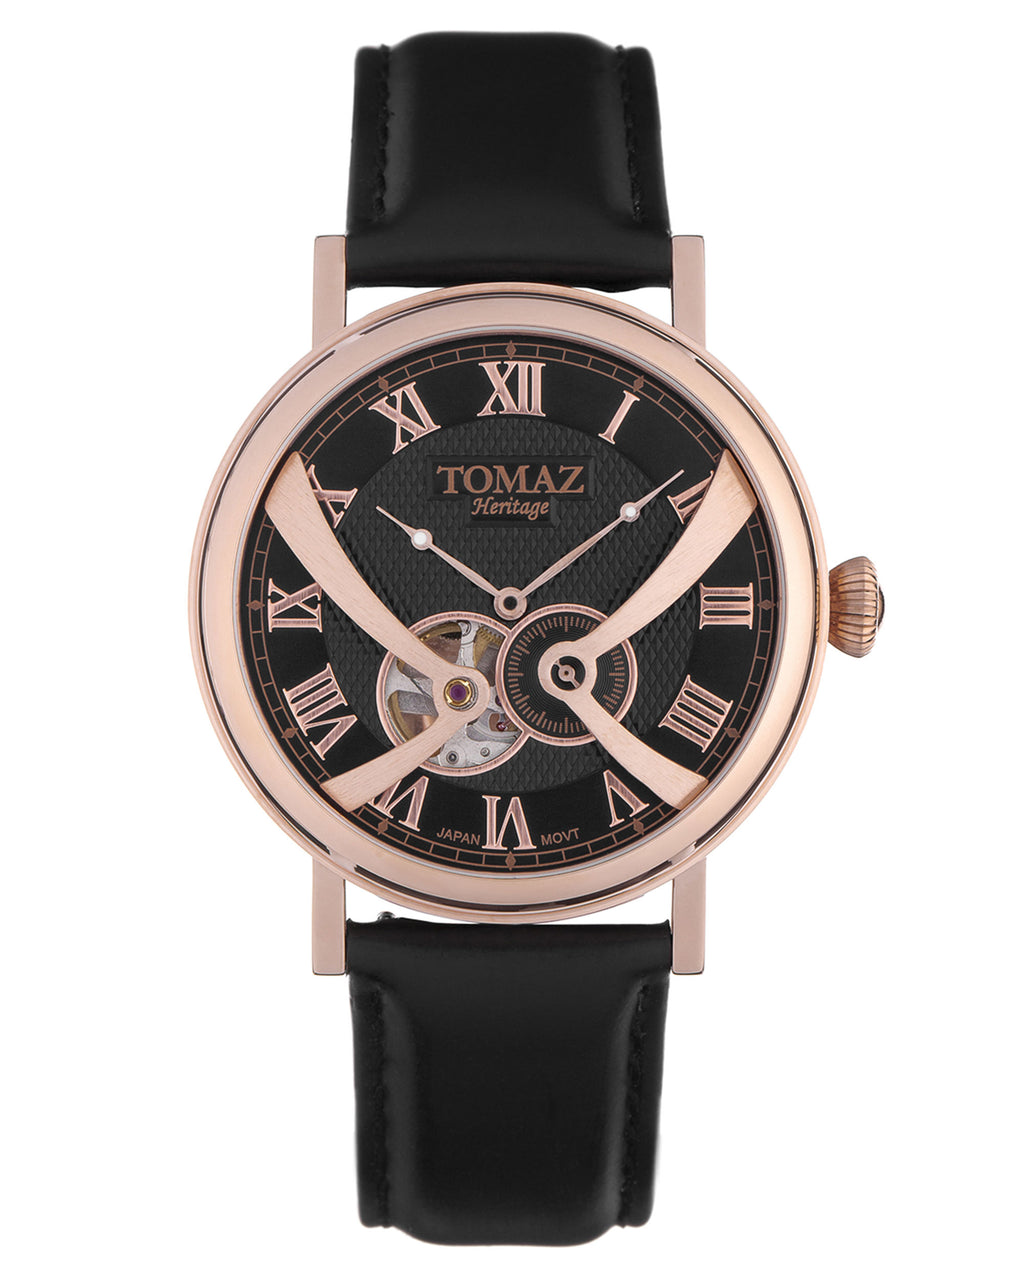 Tomaz Men's Watch TW015 (Rose Gold/Black)